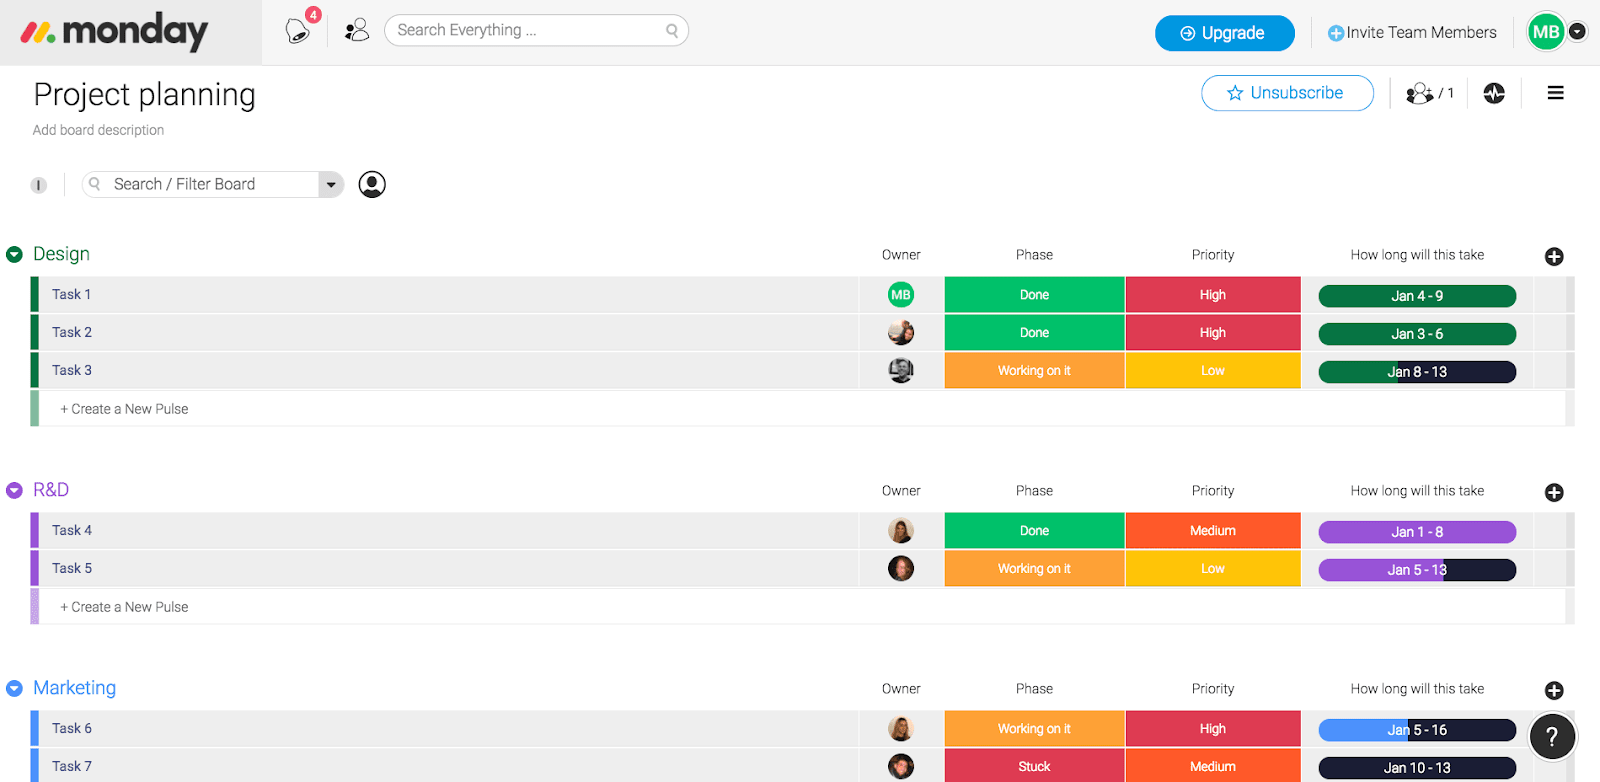 Example of monday.com's project planning template